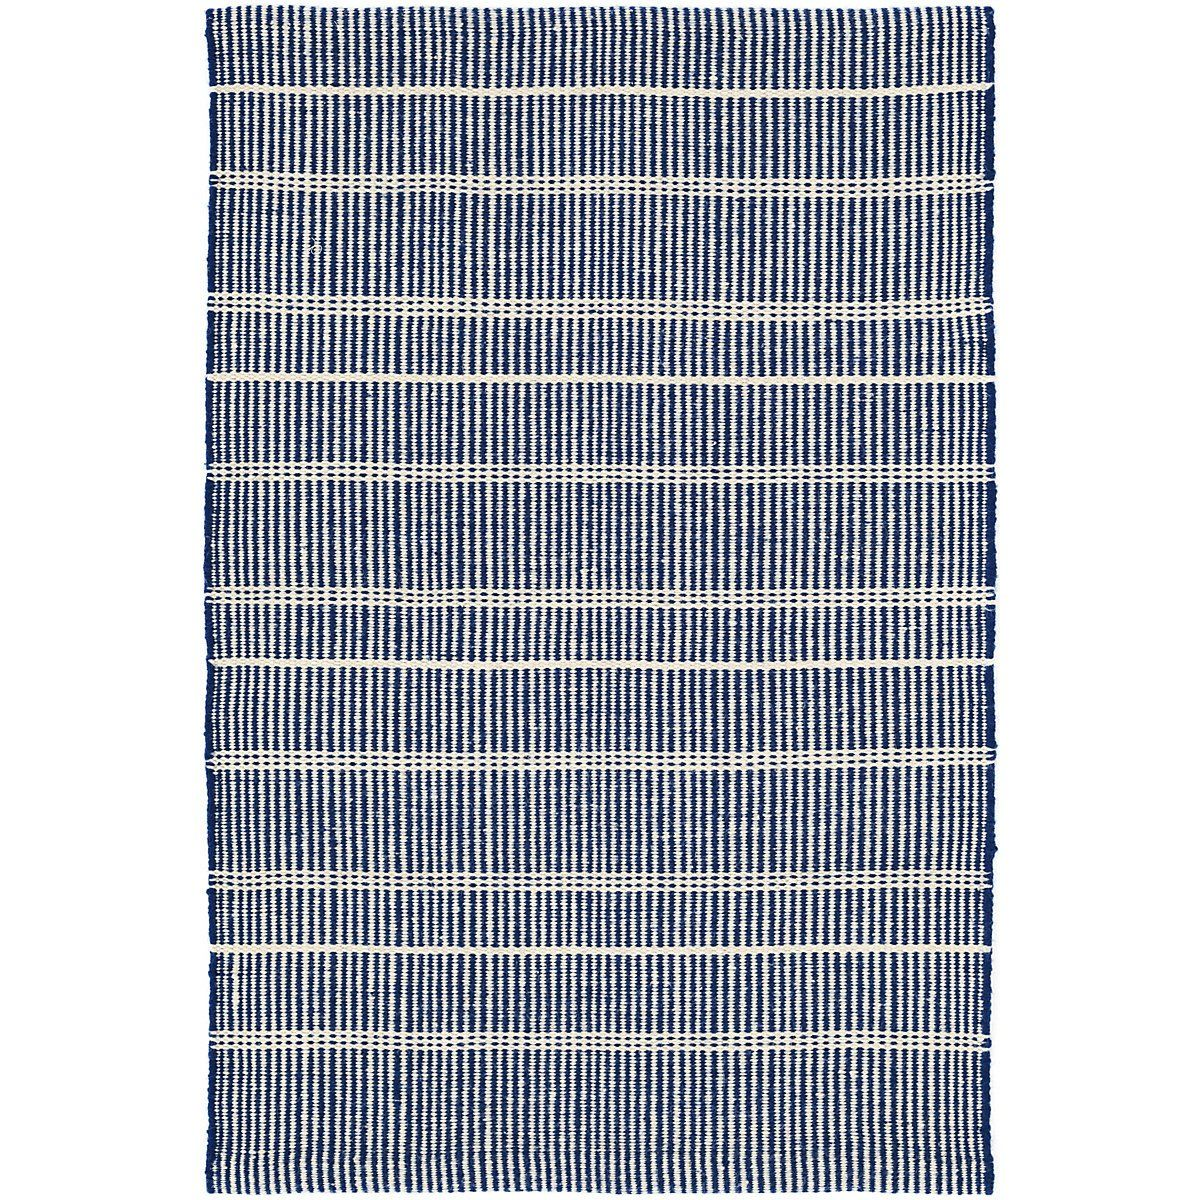 Samson Navy Indoor Outdoor Rug Design